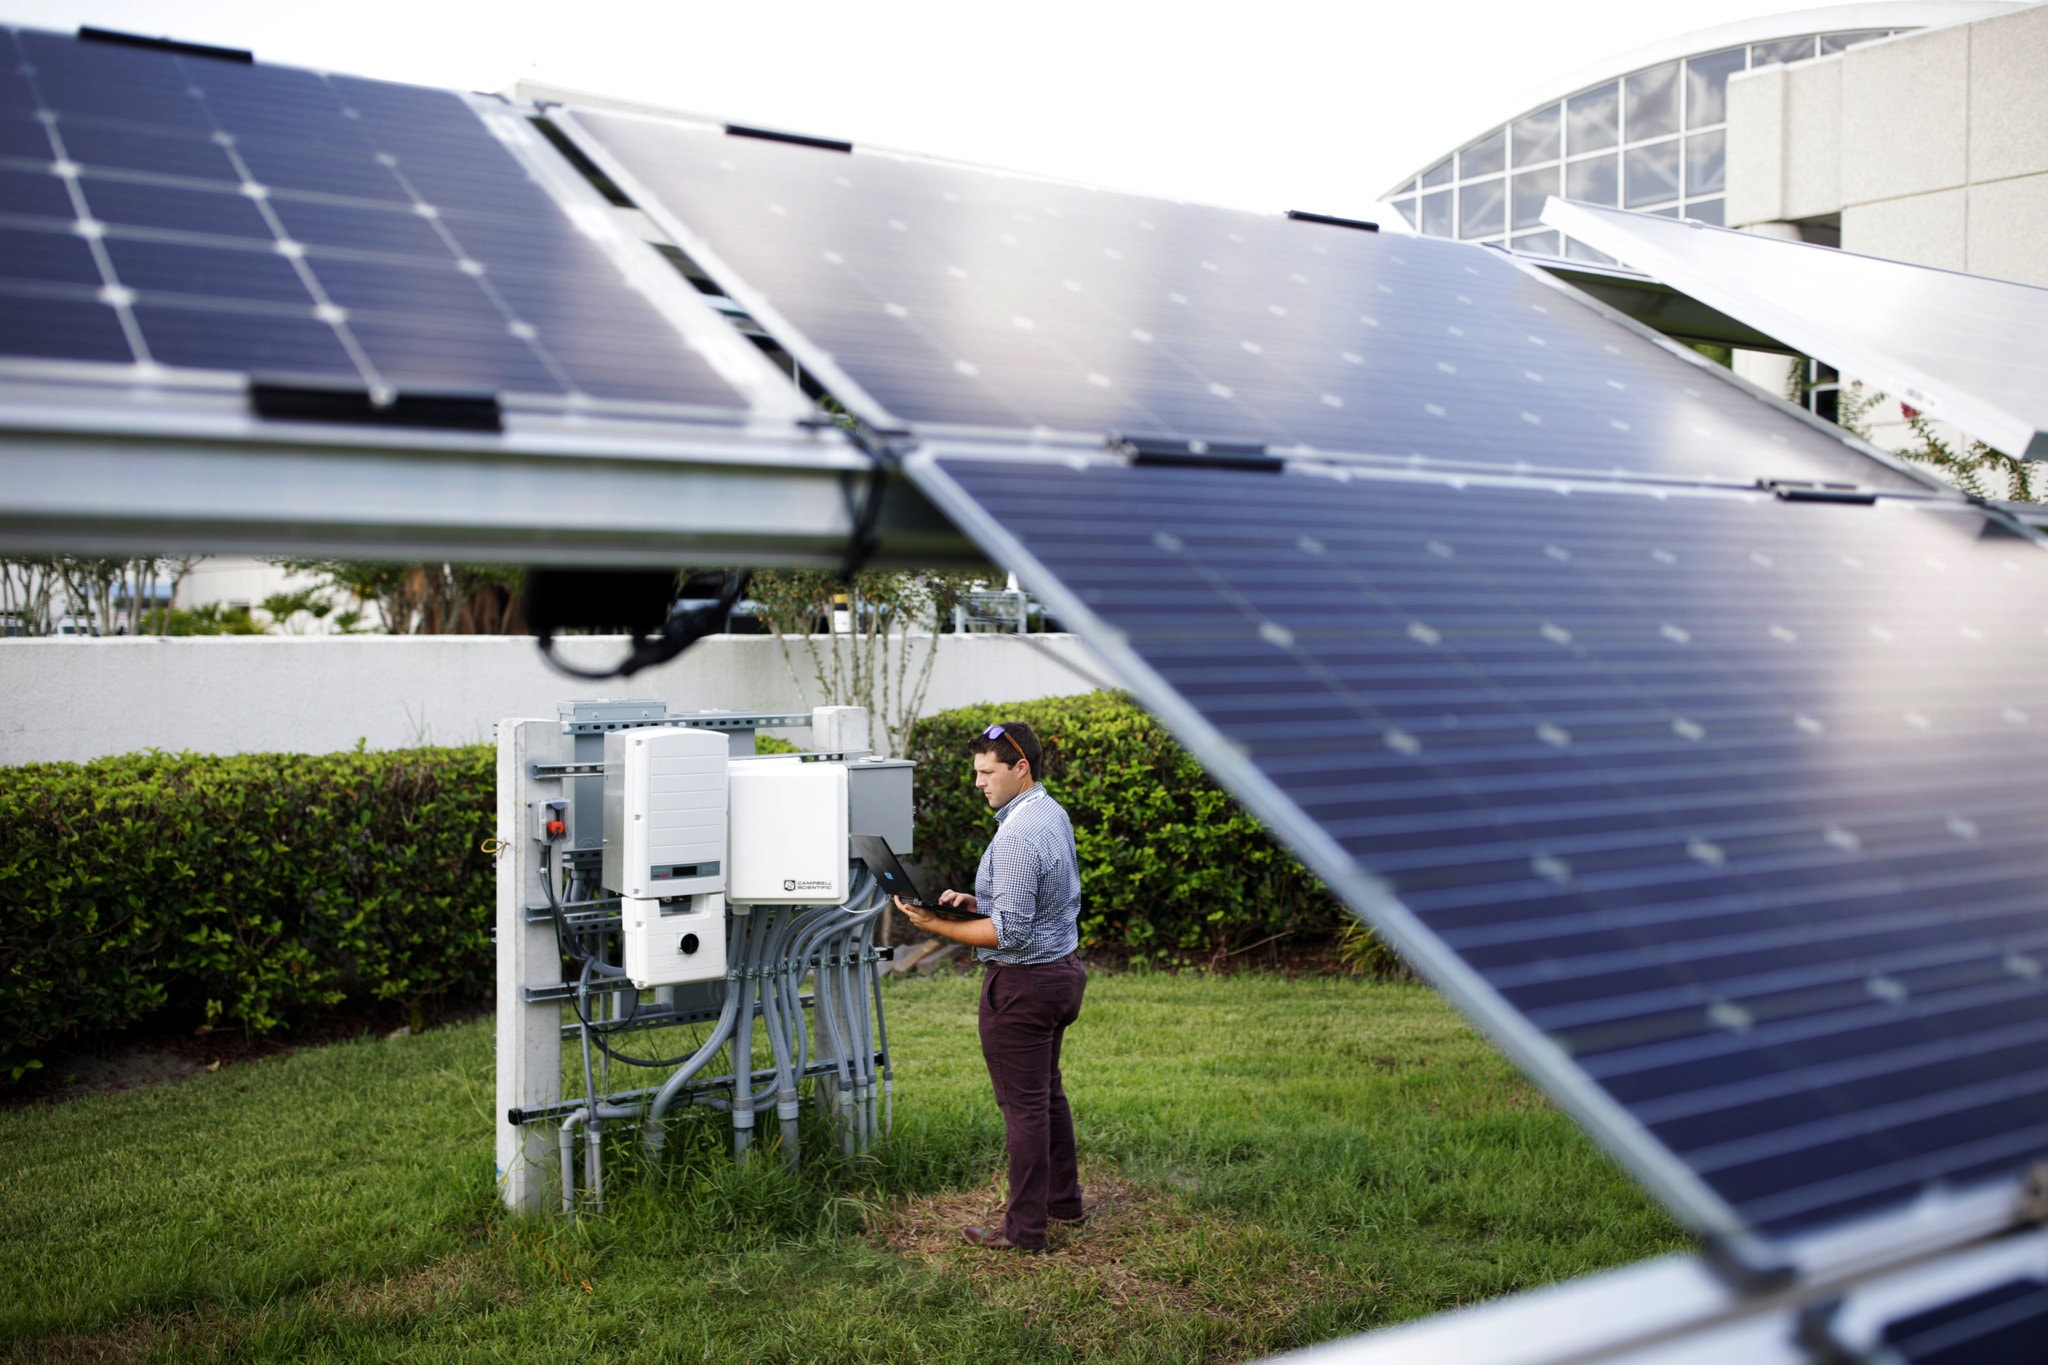 Engineer with the Orlando Utilities Commission, examining data at a solar test site installed by Power Production Management. Photo taken by New York Times, and full article can be found here:  https://www.nytimes.com/2018/08/30/business/energy-environment/orlando-carbon-climate.html